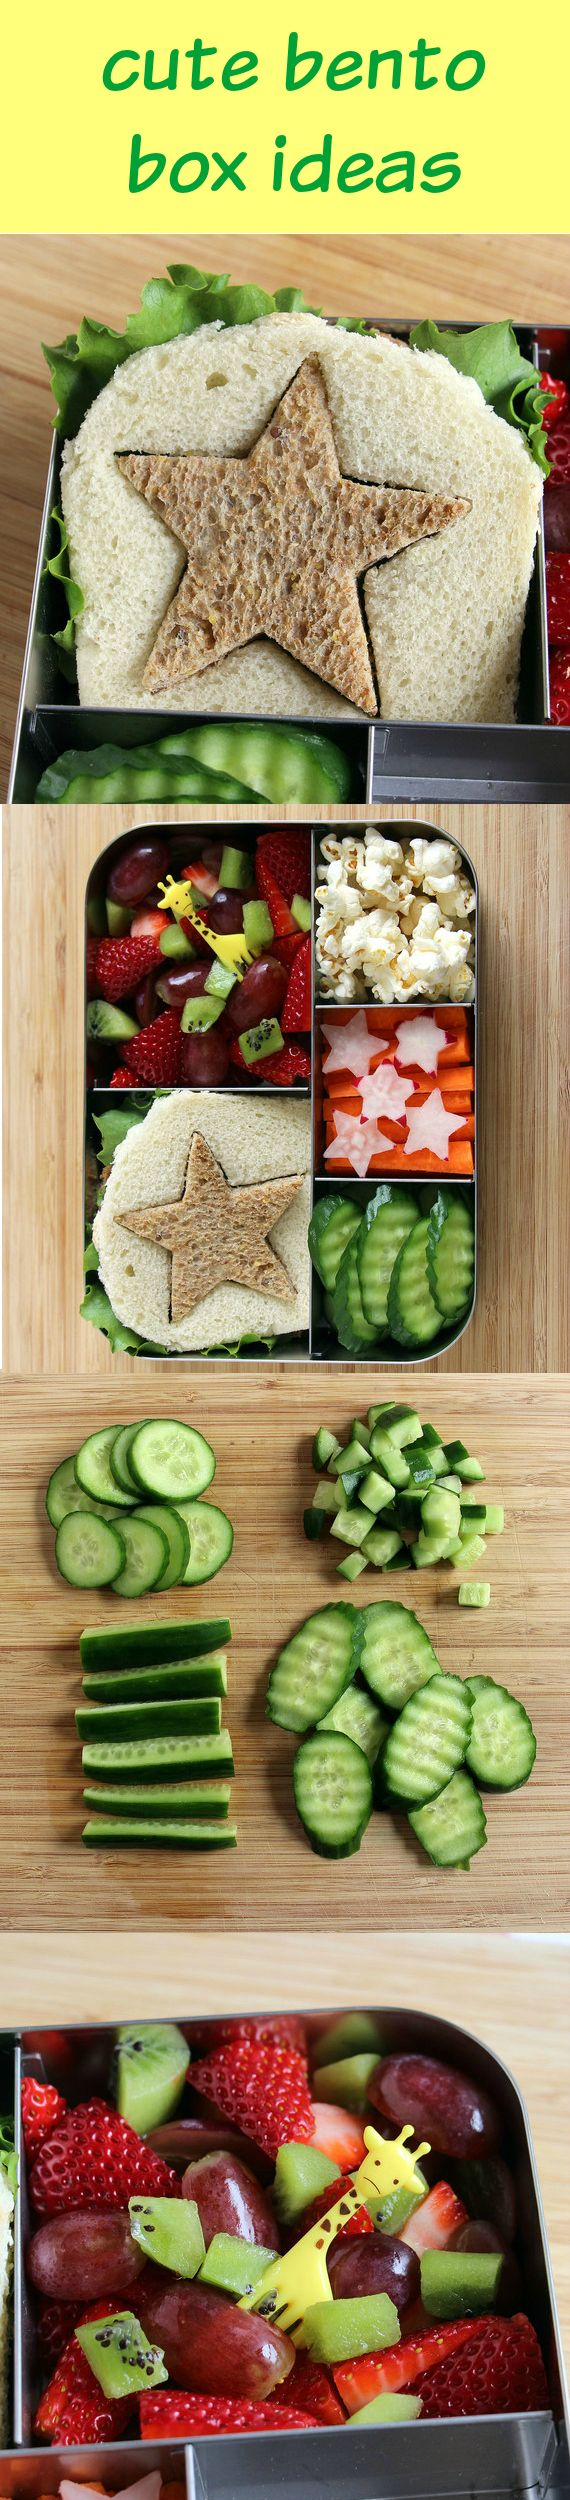 Have some picky eaters in the household? Pull together an adorable bento box lunch that'll entice them to eat fruits, vegetables, and other healthy ingredients.